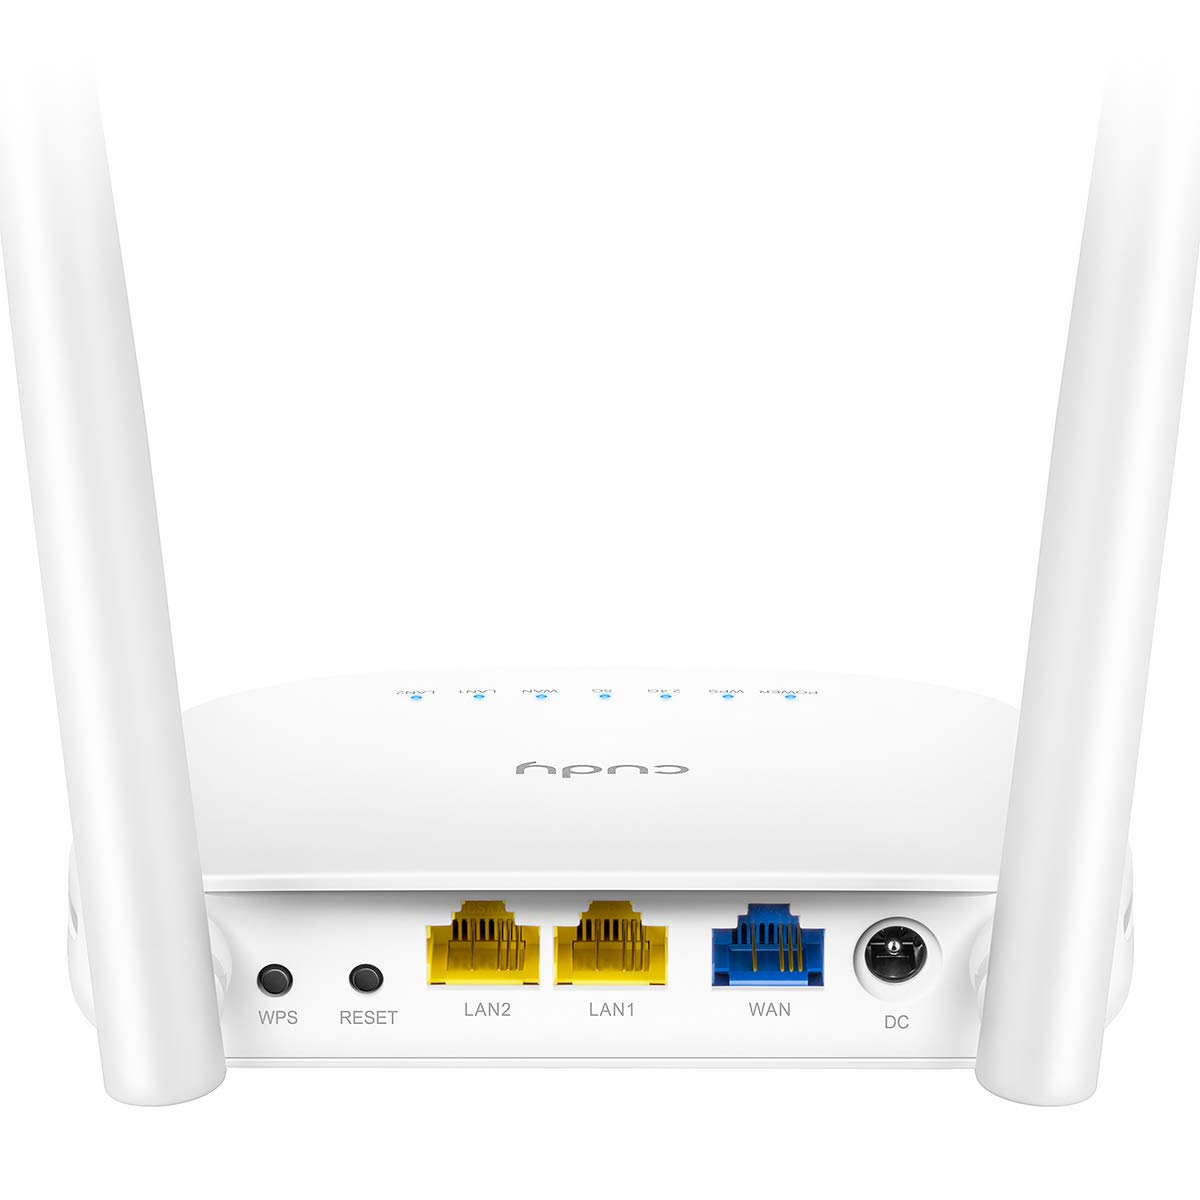 Compatible with  Alexa 2.4GHz QoS Cudy AC1200 Dual Band Smart WiFi Router Guest Network +867 Mbps 300 Mbps 5GHz WR1000 Wireless AC 1200Mbps Router